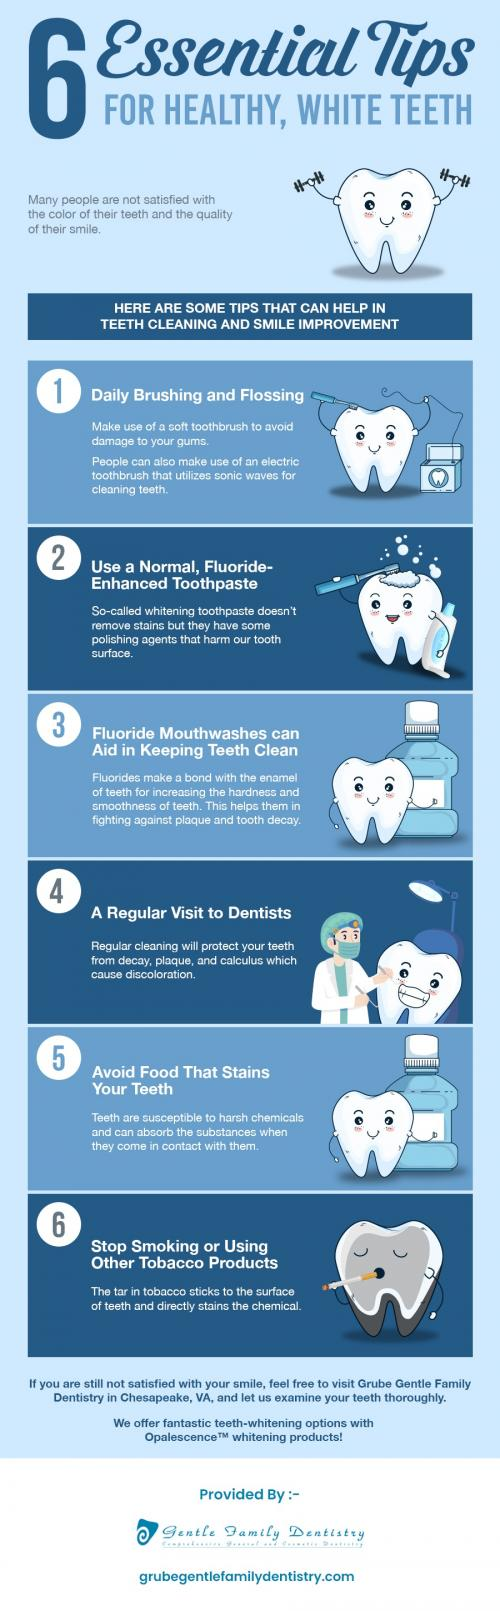 Achieve A Bright Smile with Teeth Whitening Procedure in Chesapeake, VA from Grube Gentle Family Dentistry